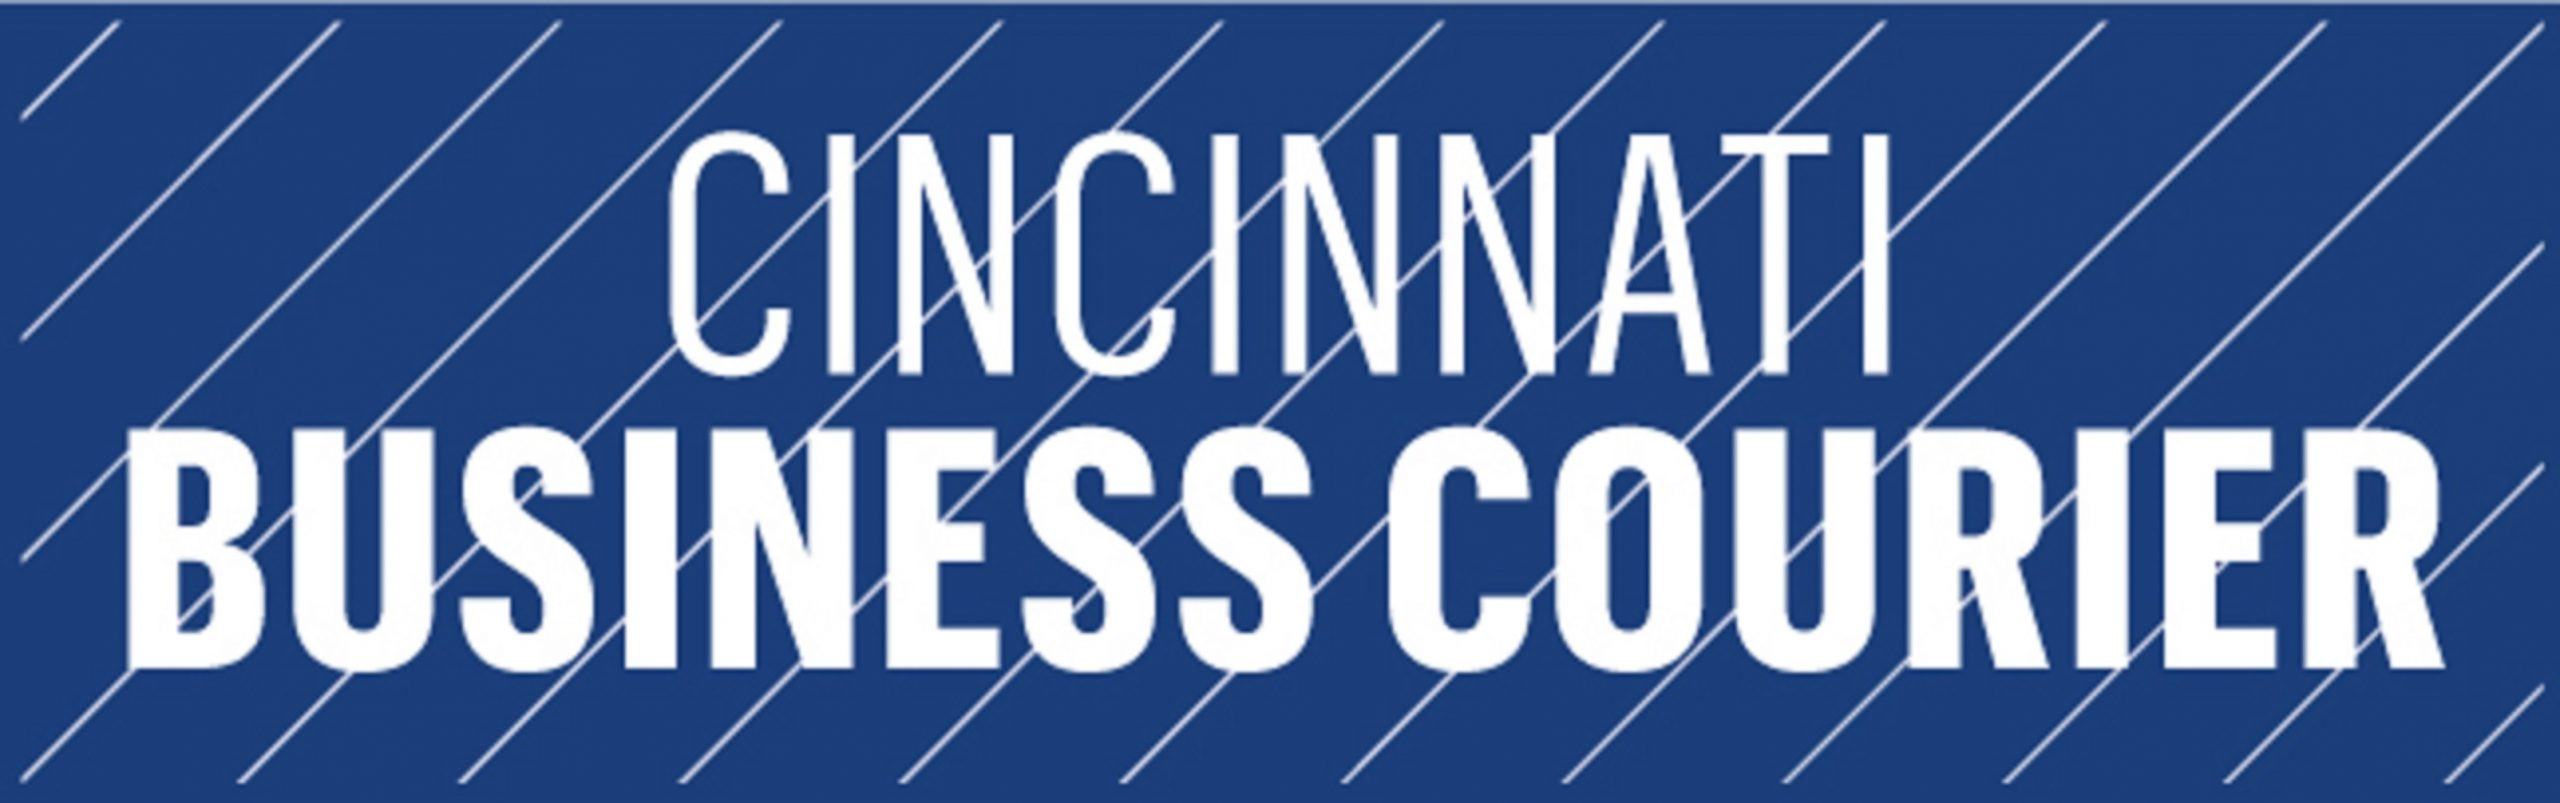 Cincinnati Business Courier logo (opens in a new tab)